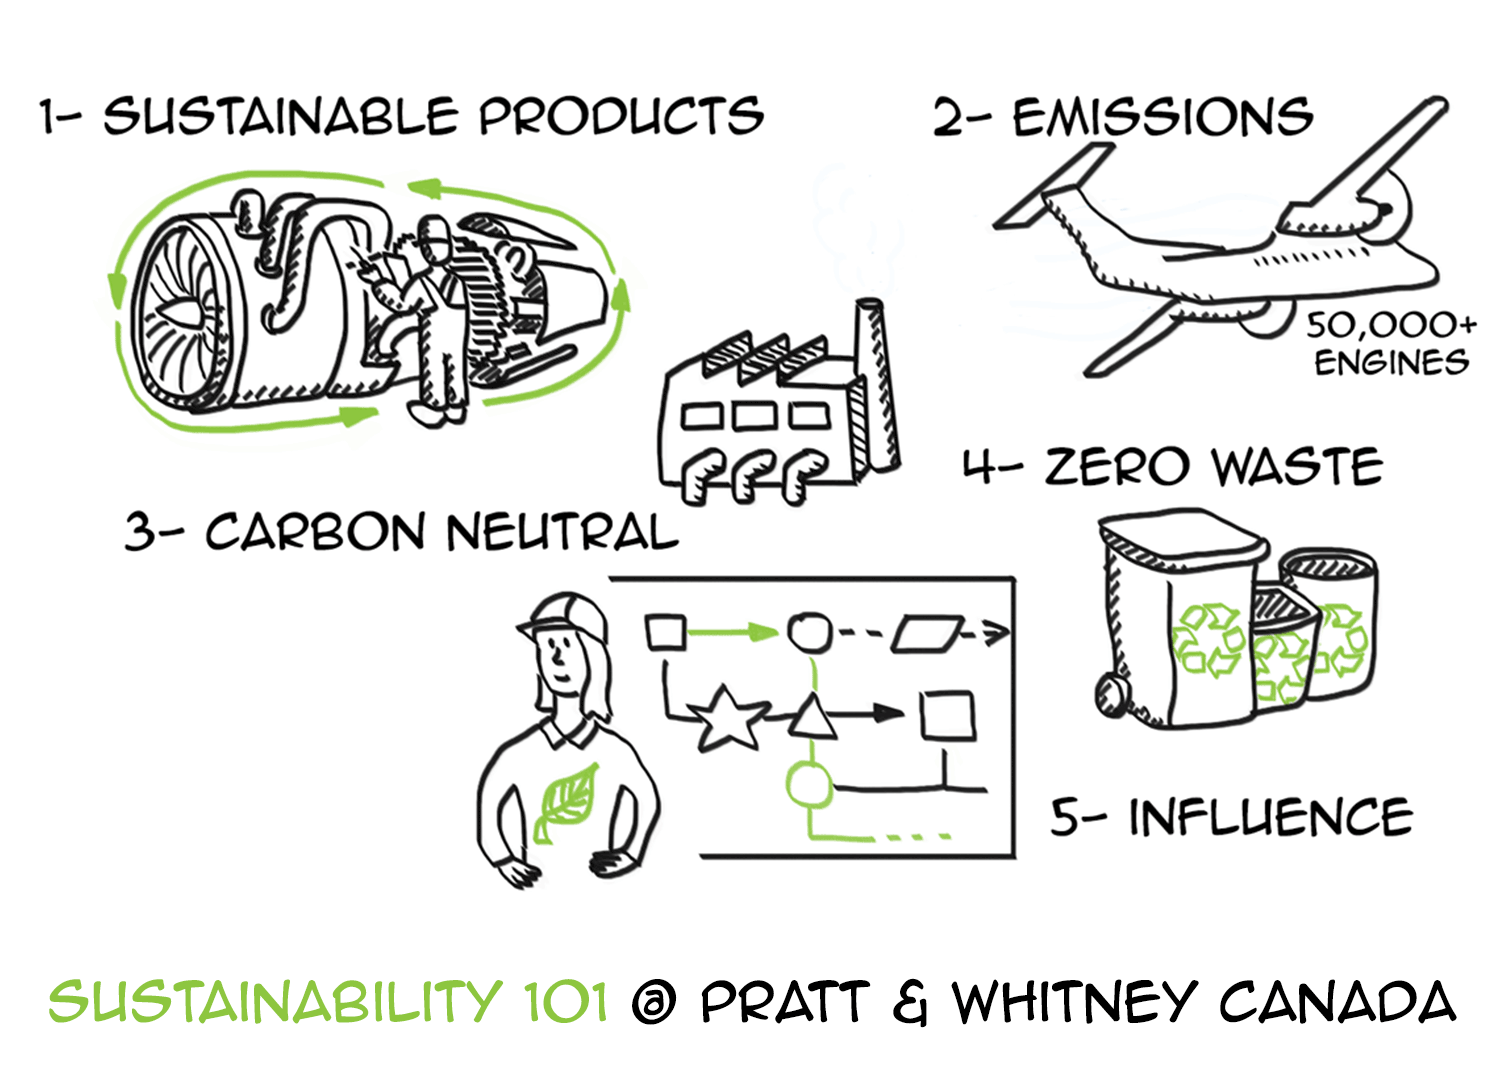 Sustainability 101 @ Pratt & Whitney Canada